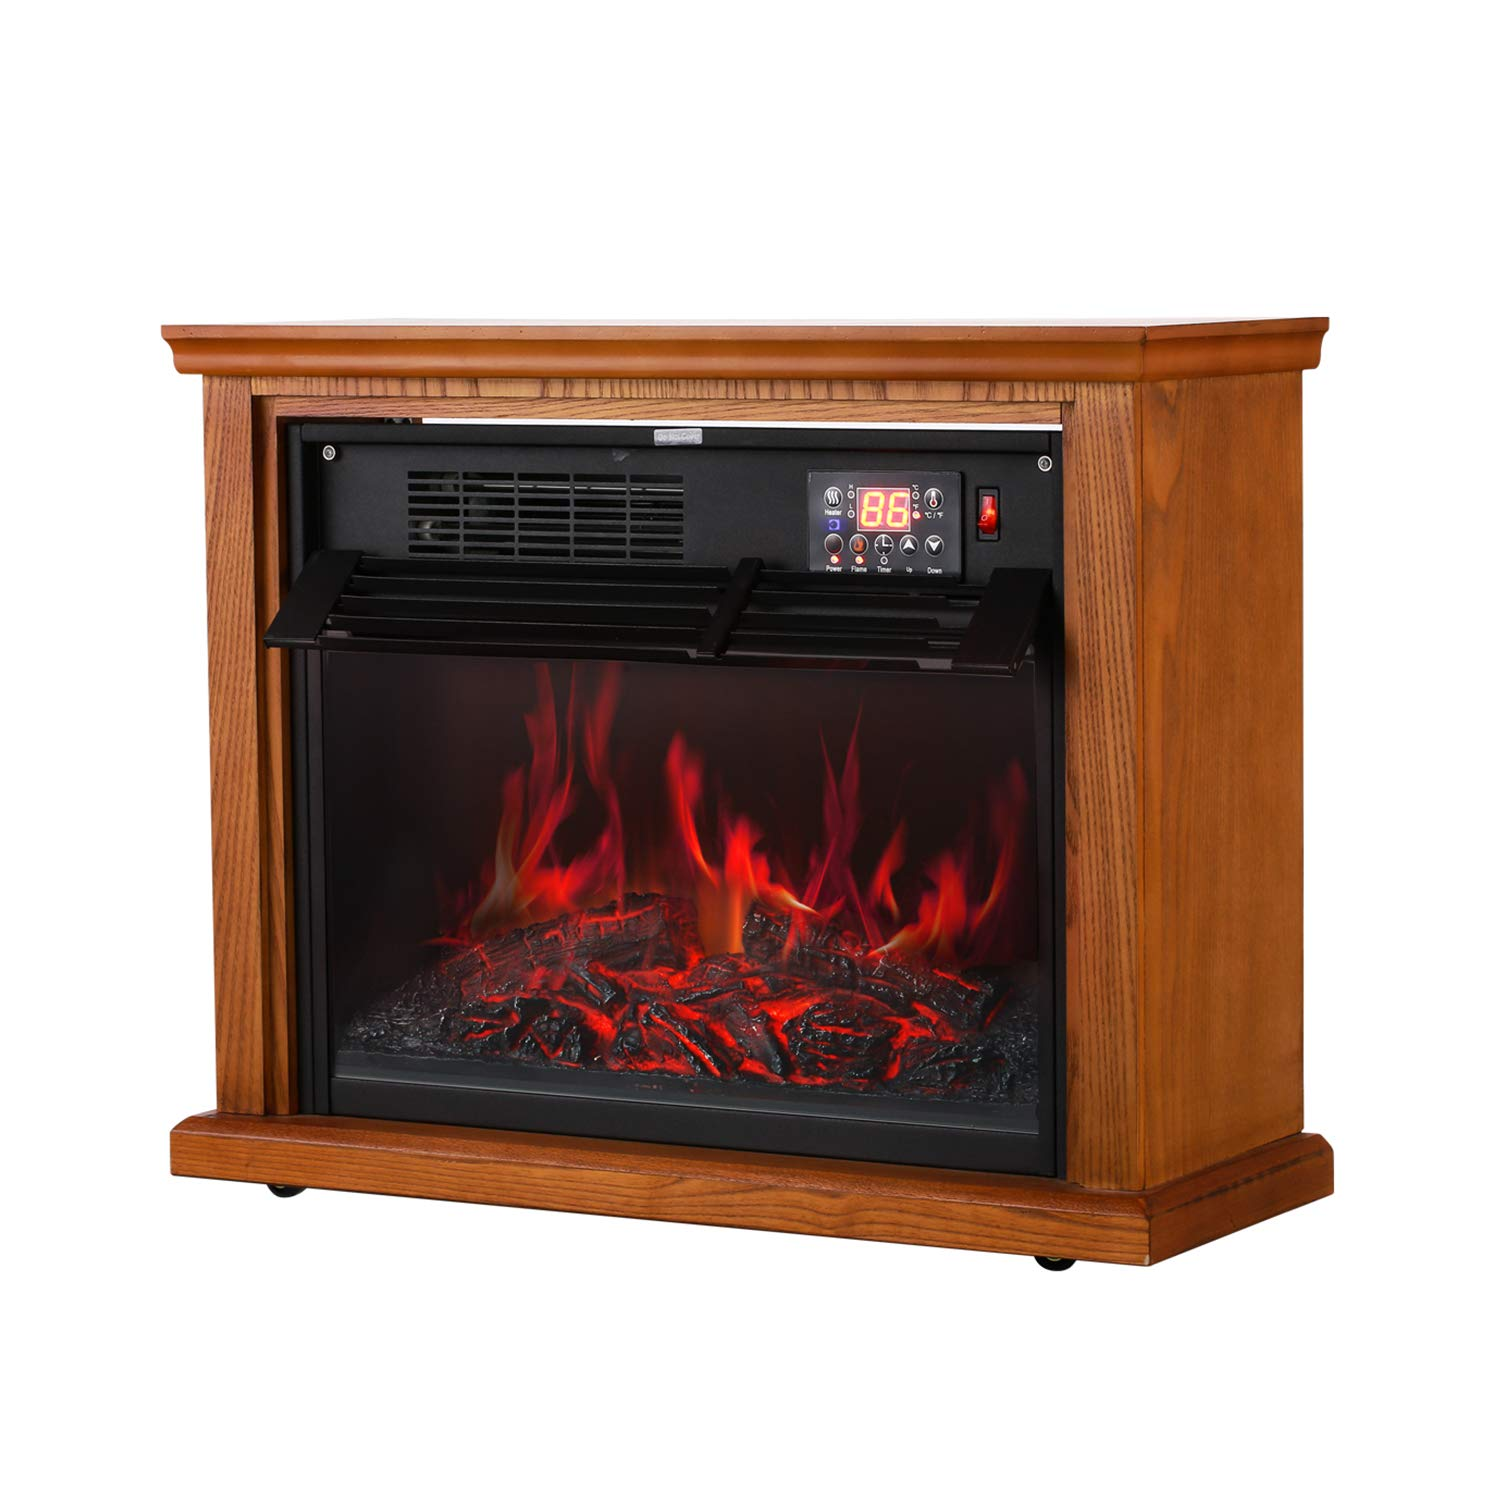 Electric Fireplace Infrared Quartz Heater Adjustable Thermostat 1000W 1500W with Overheat Safety Remote Control 3D Realistic Flame 12 Timer